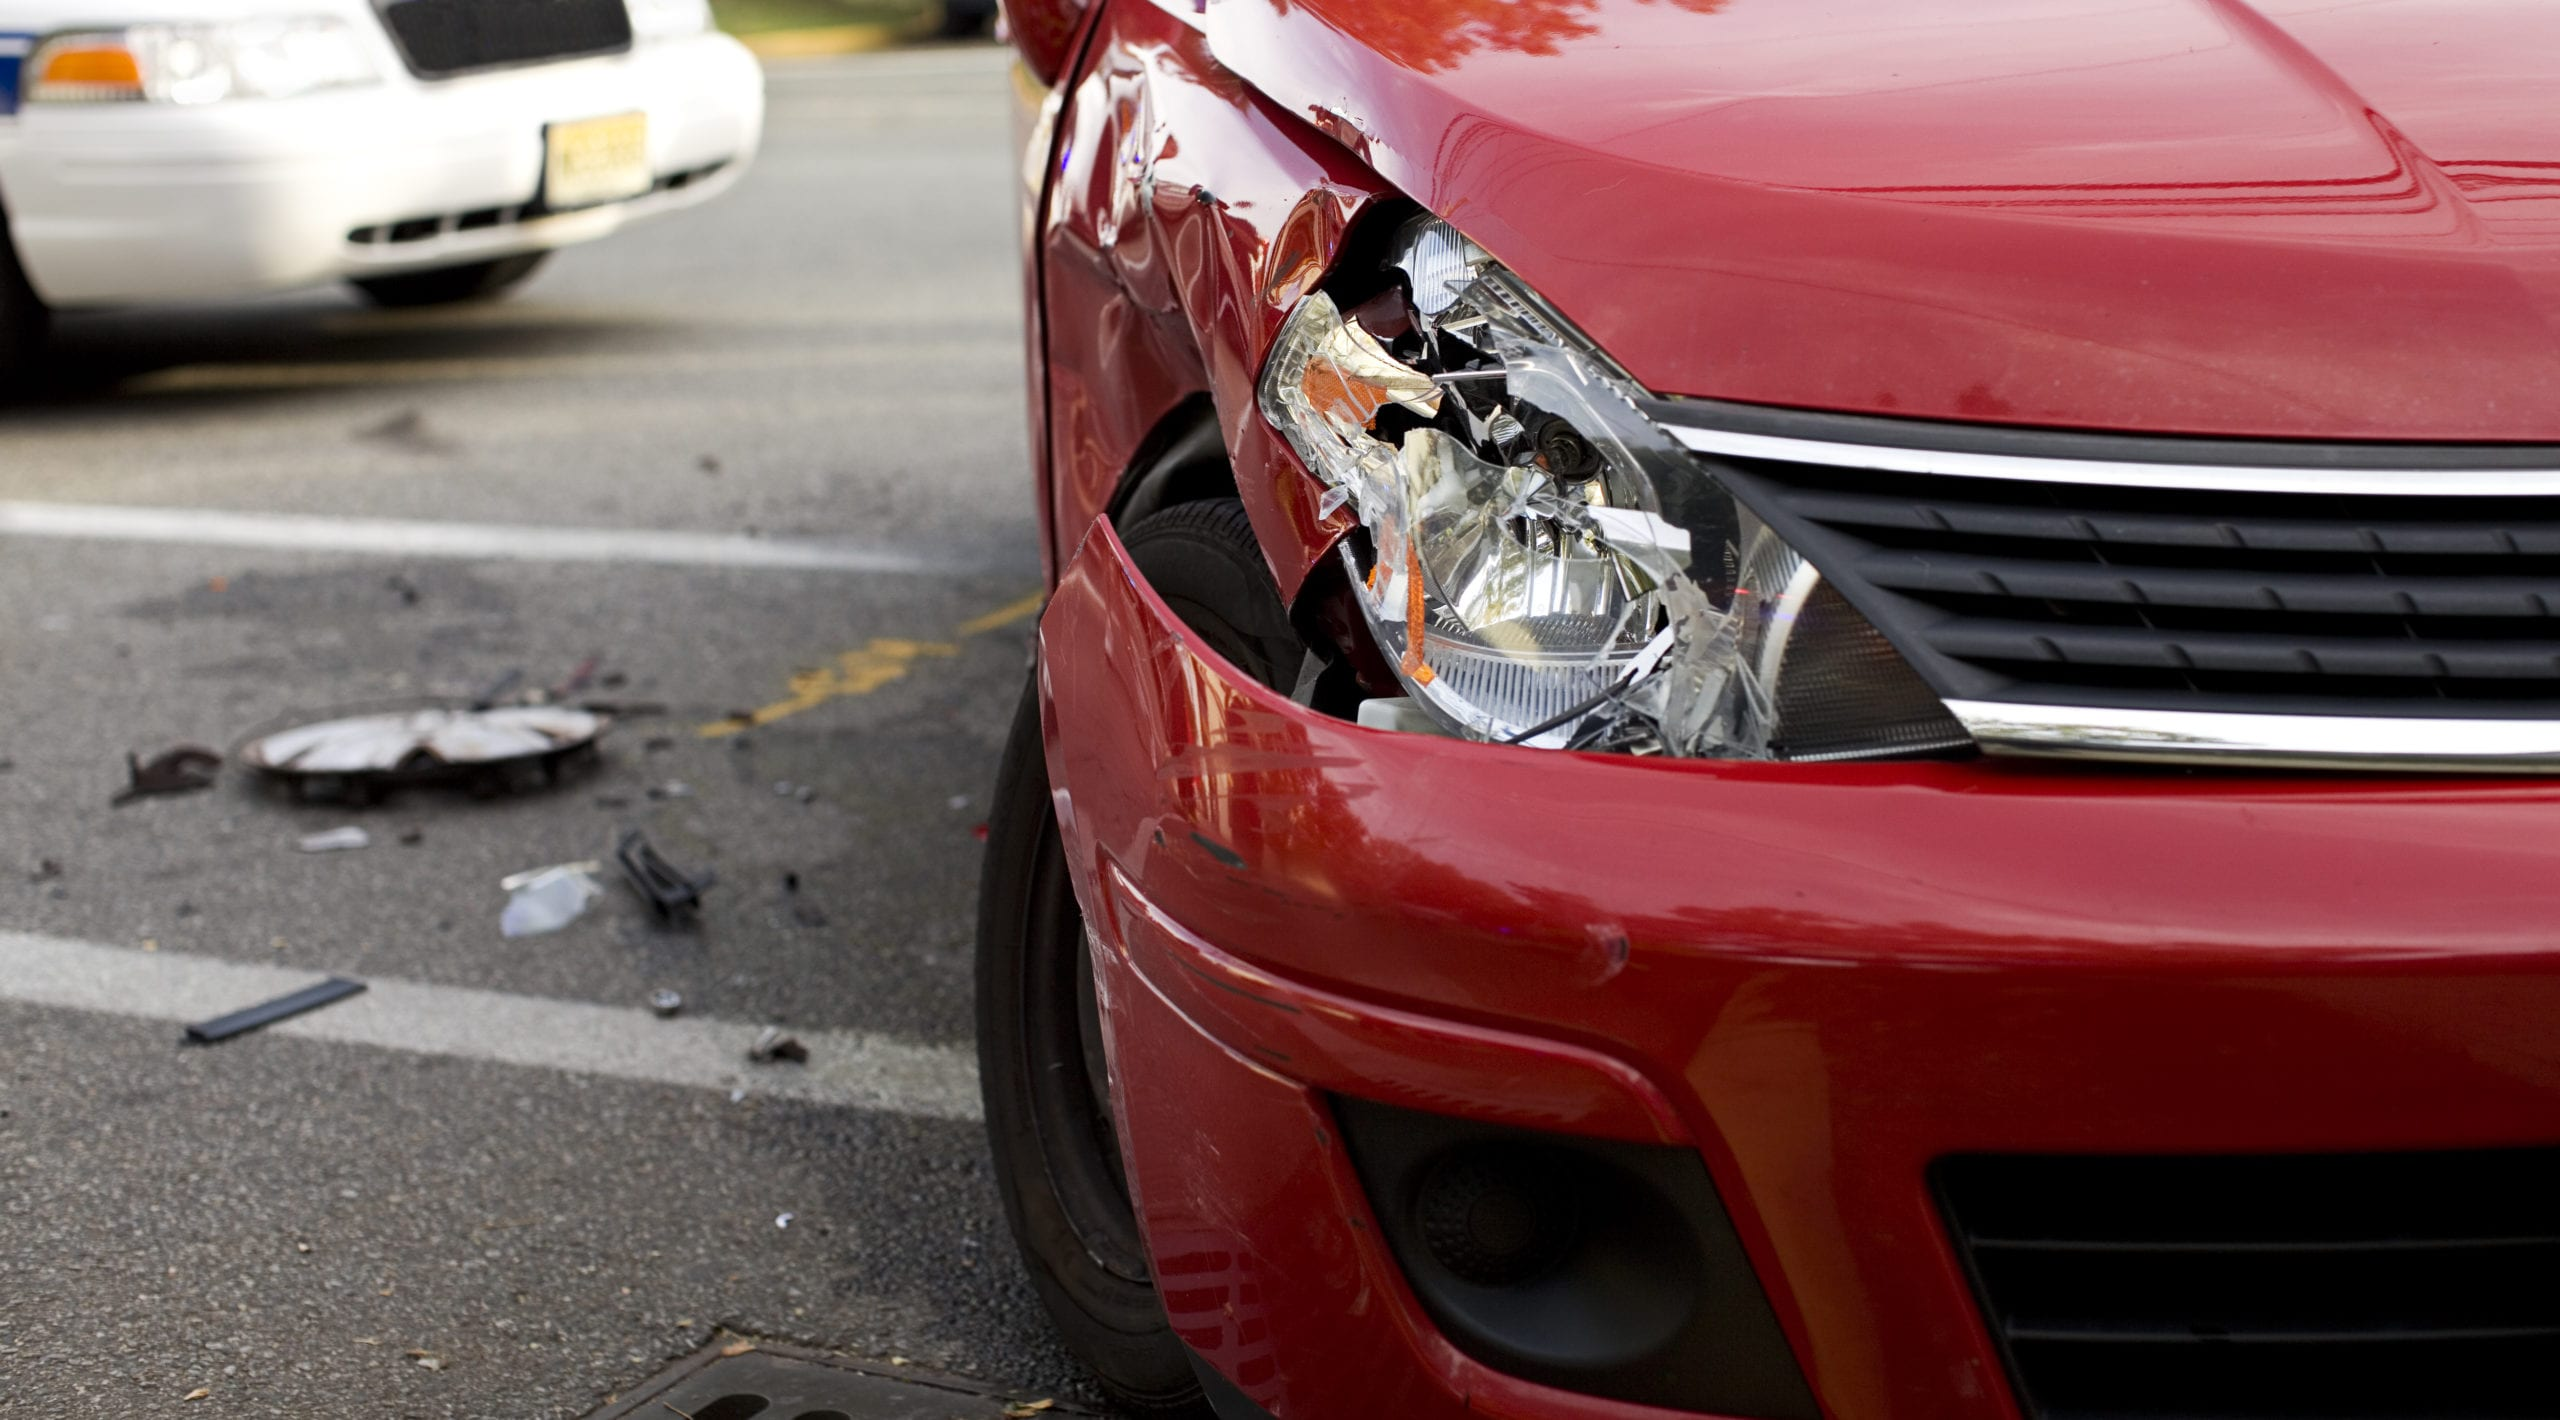 damage after a car accident in Greensboro, NC